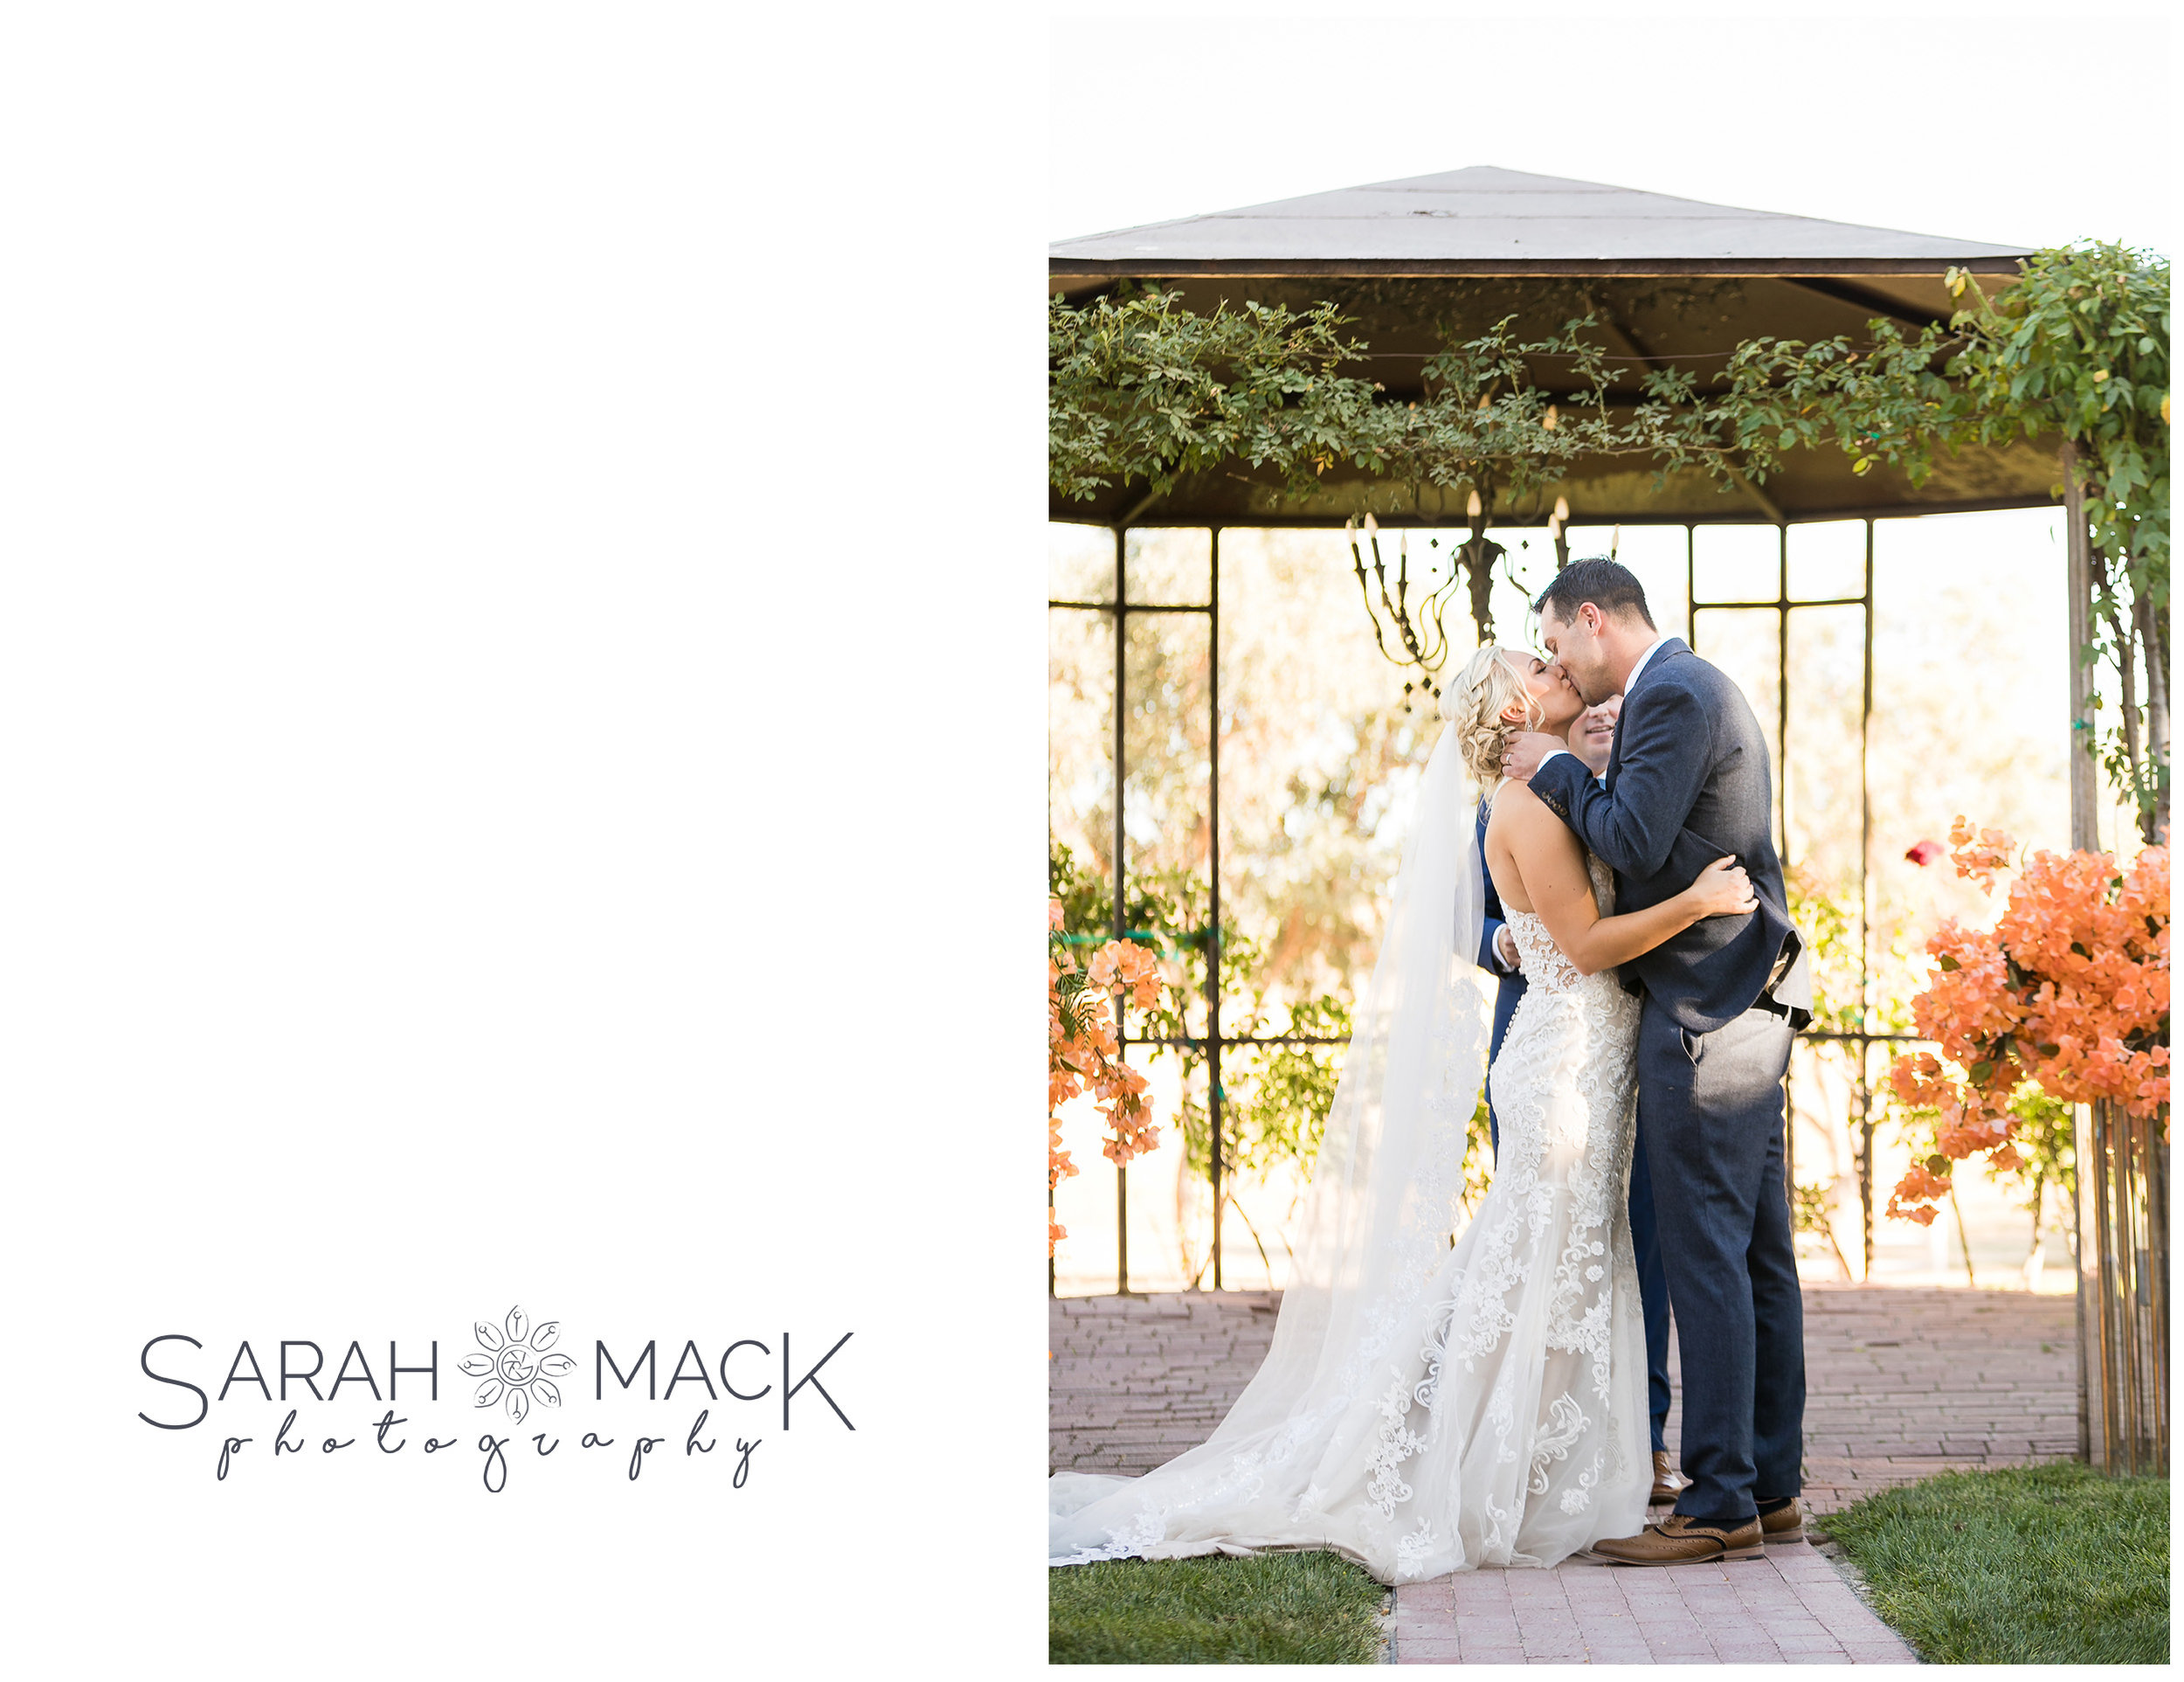 MA-Chandler-Ranch-Paso-Robles-Wedding-Photography-70.jpg